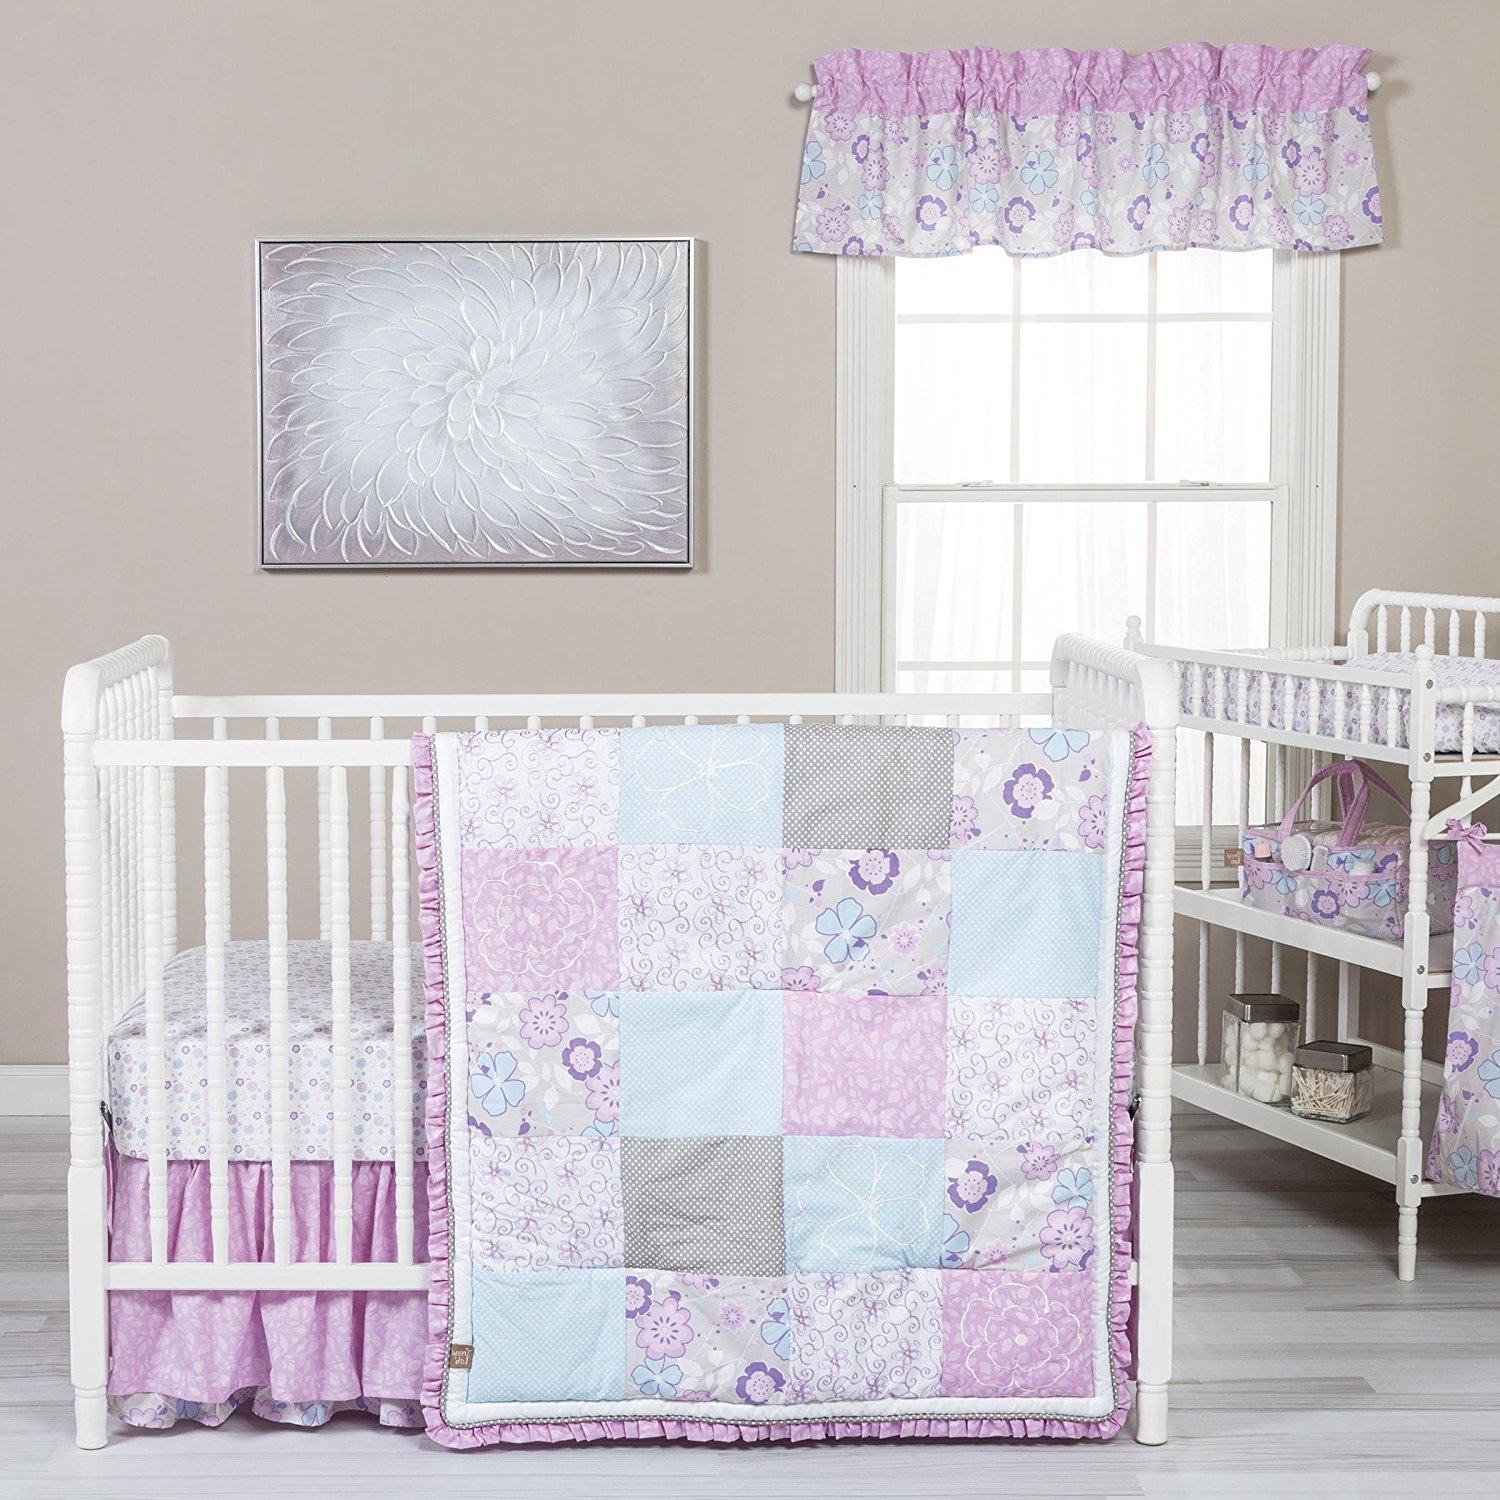 Patchwork Set Baby Buy On 5 Piece Baby Girls Purple Blue Pink Flowers Crib